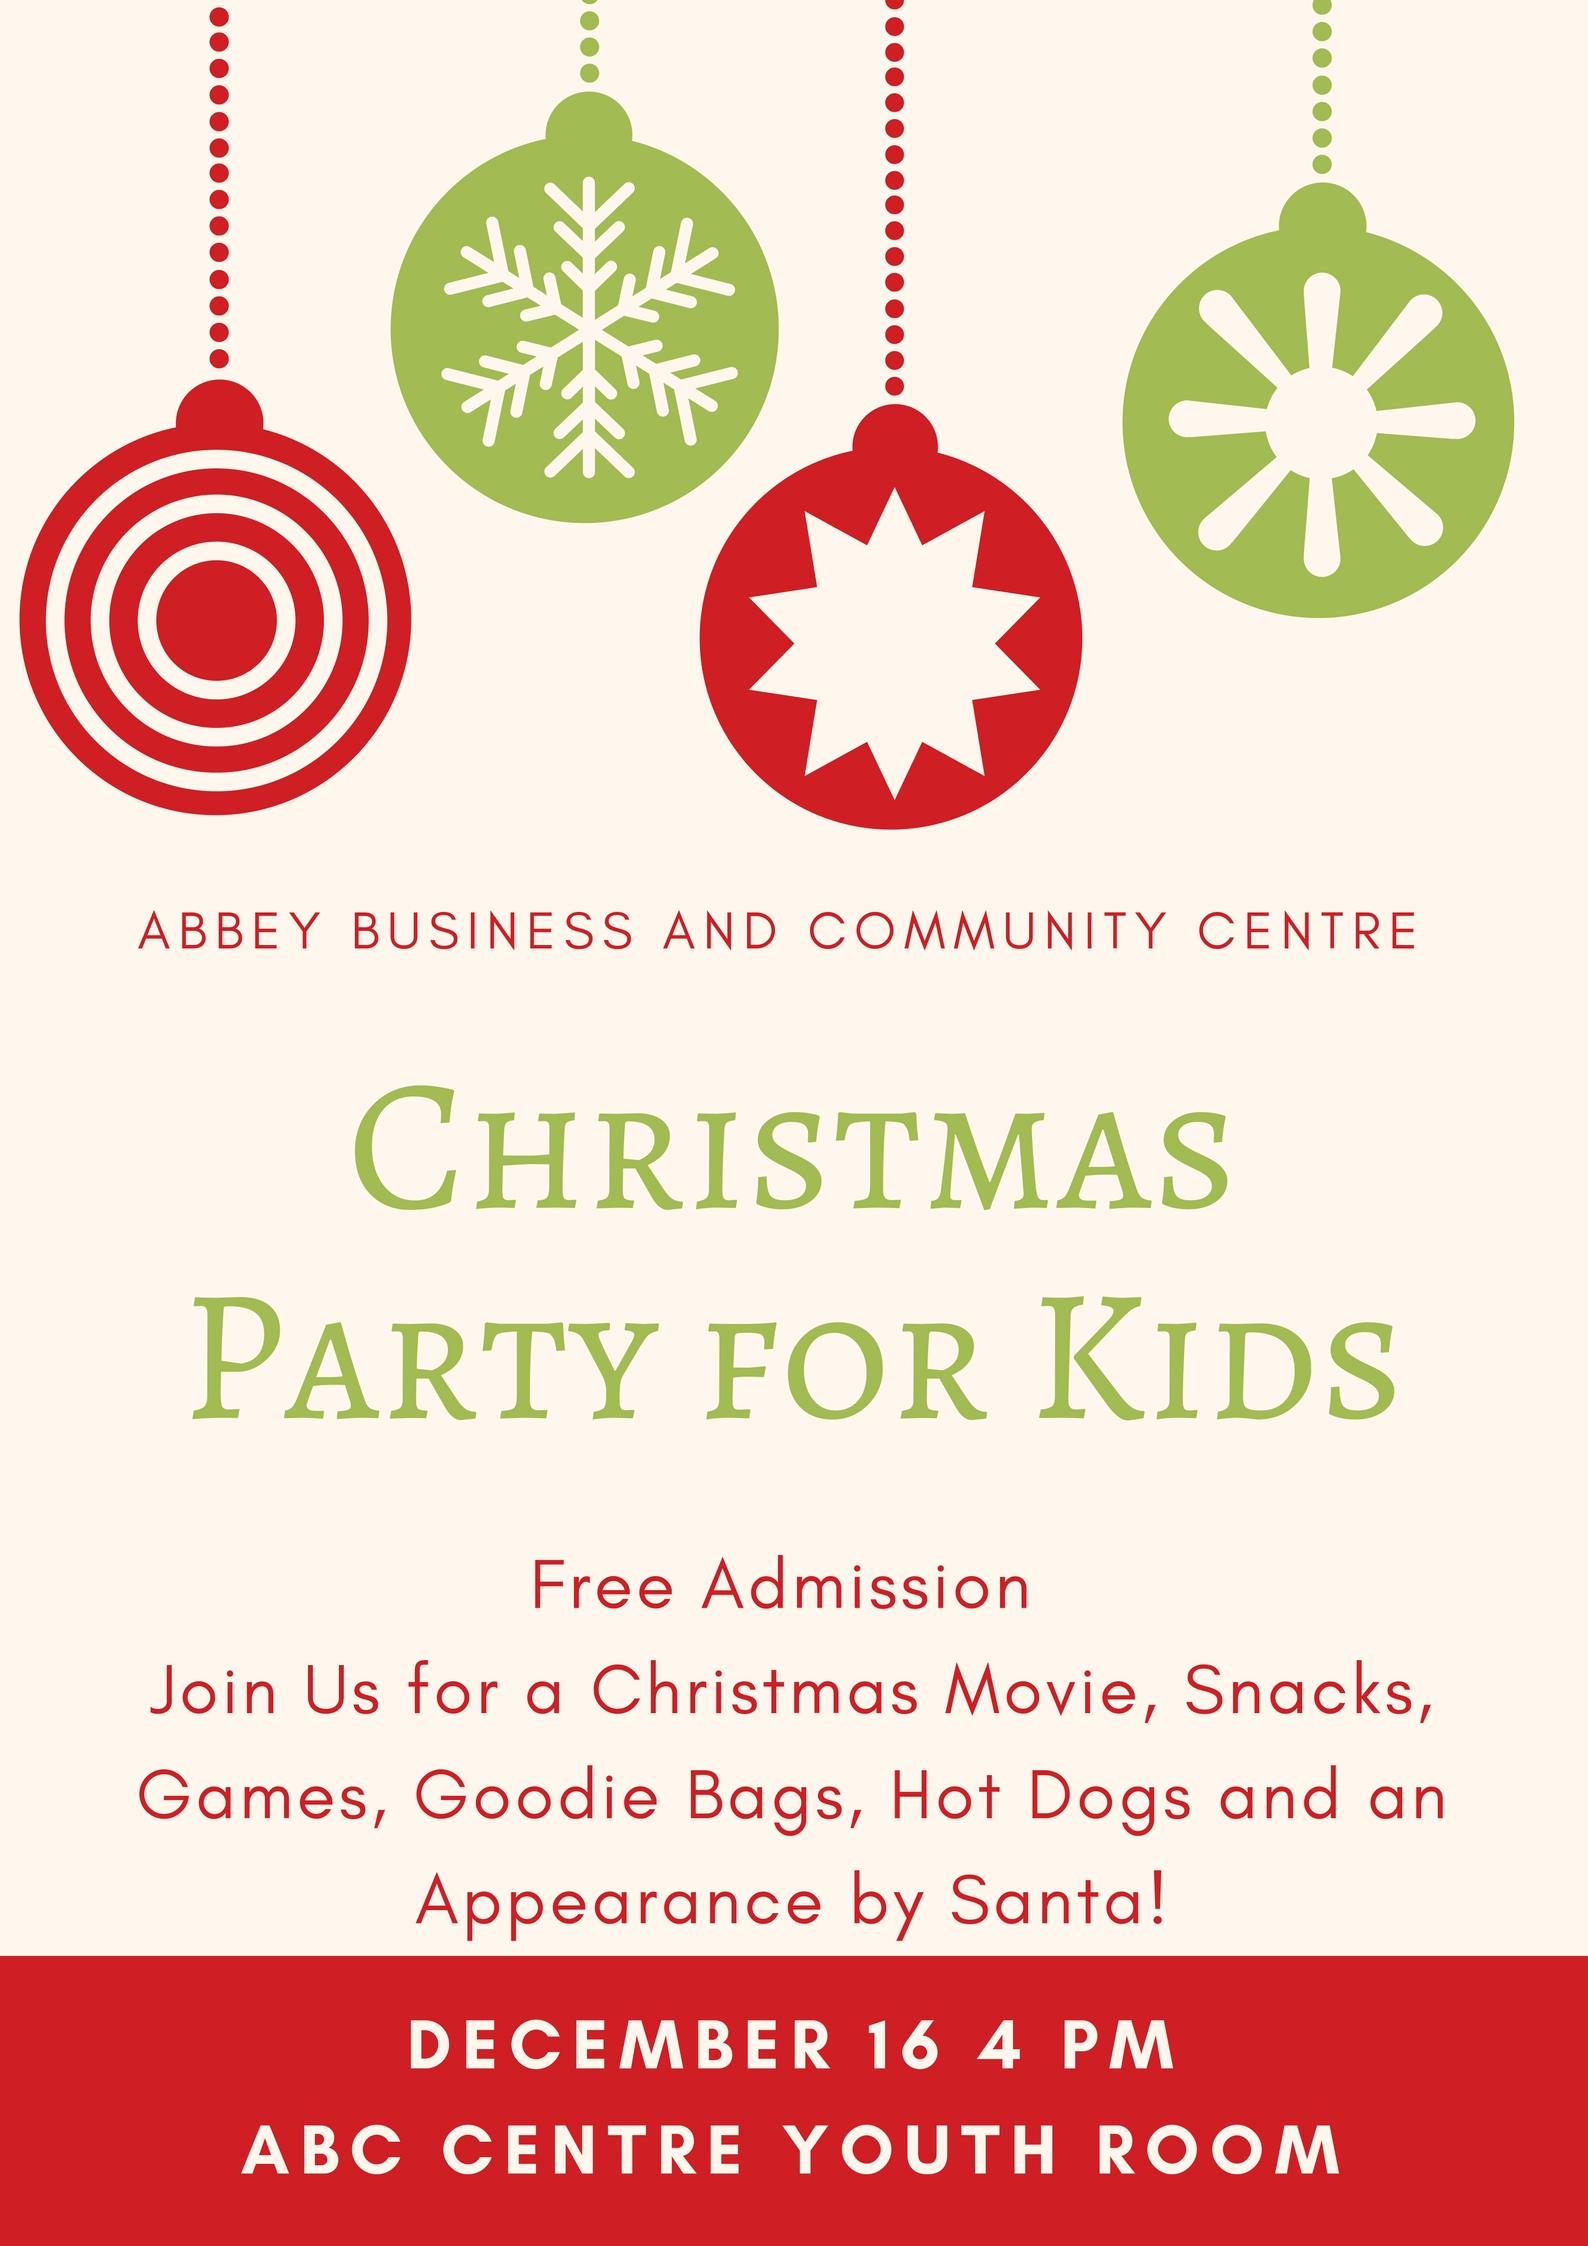 Abbey Business and Community Centre Kids.jpg